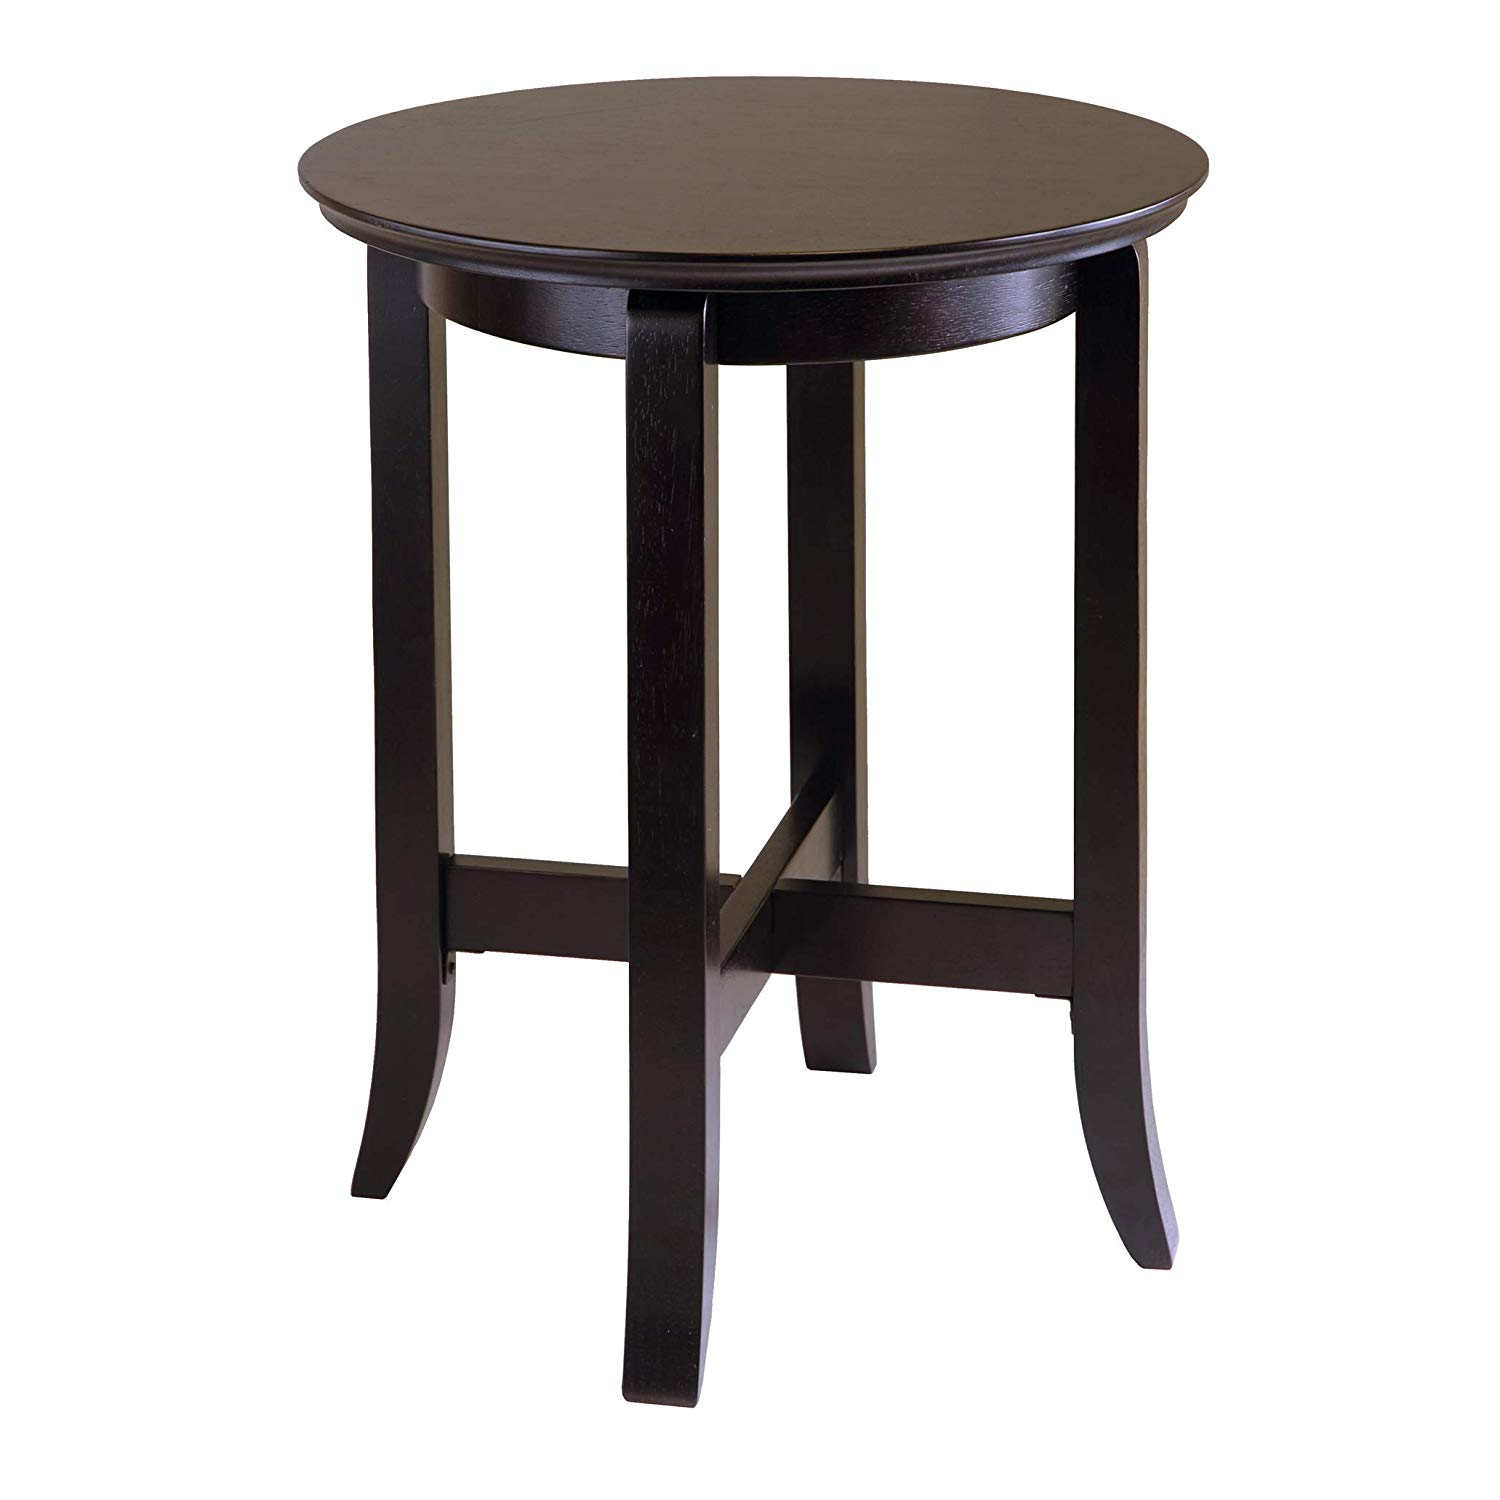 winsome wood toby occasional table espresso cassie accent with glass top cappuccino finish kitchen dining grey cabinet sunshade umbrella narrow small entry centerpiece ideas sasha